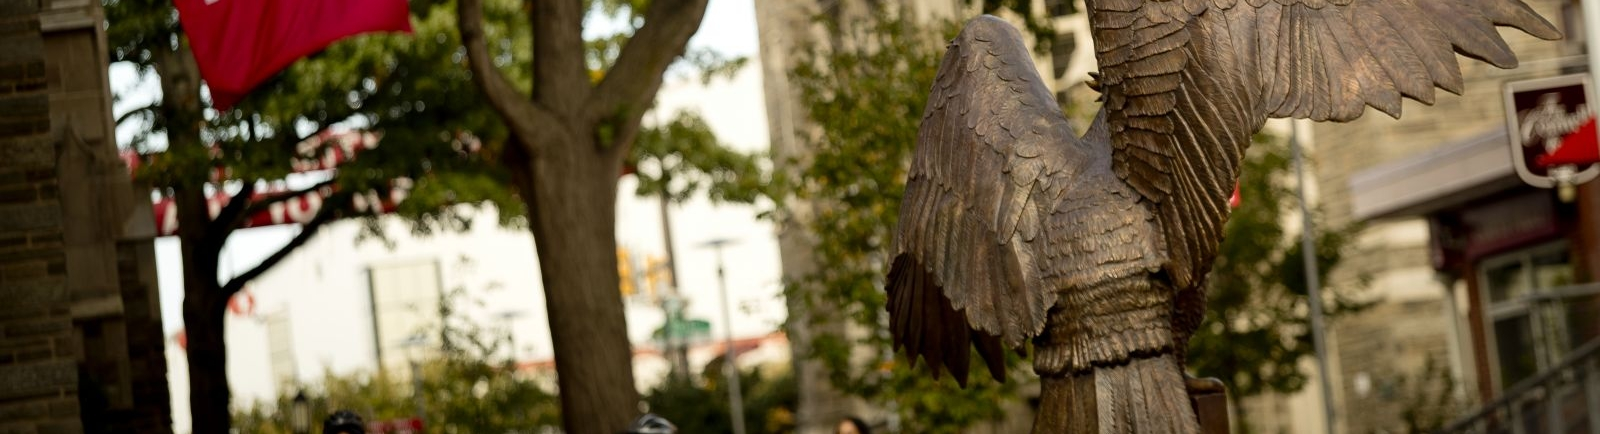 Owl statue in O'Connor Plaza on Temple Main Campus